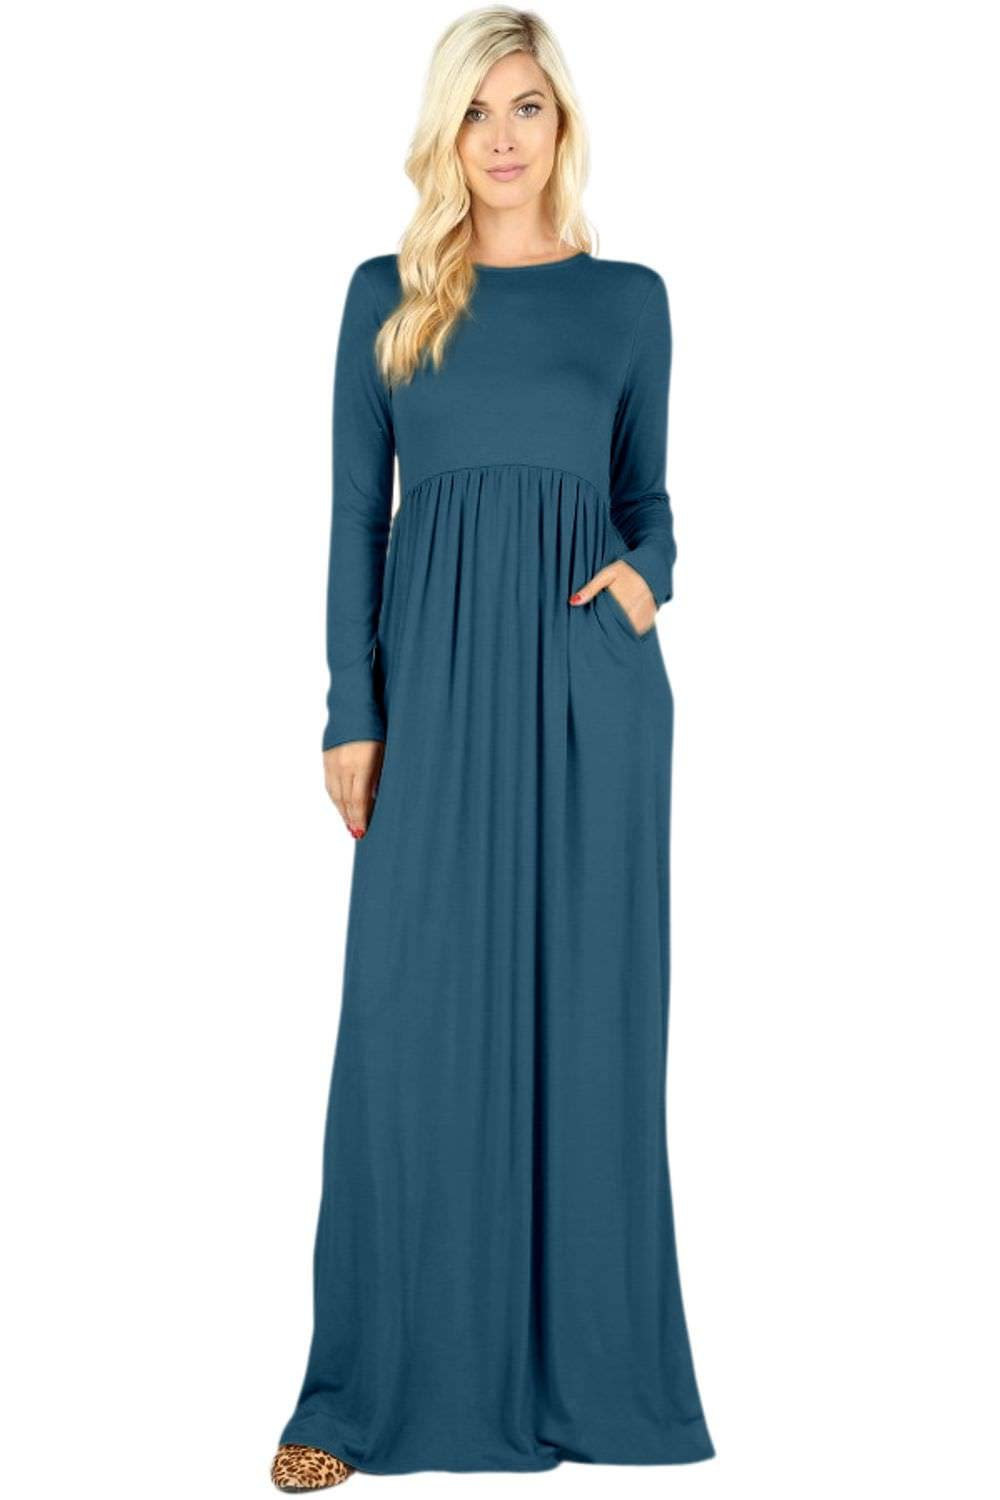 Available at Amazon: Sportoli Maxi Dresses for Women Solid Lightweight Long Casual Long Sleeve W/Pocket